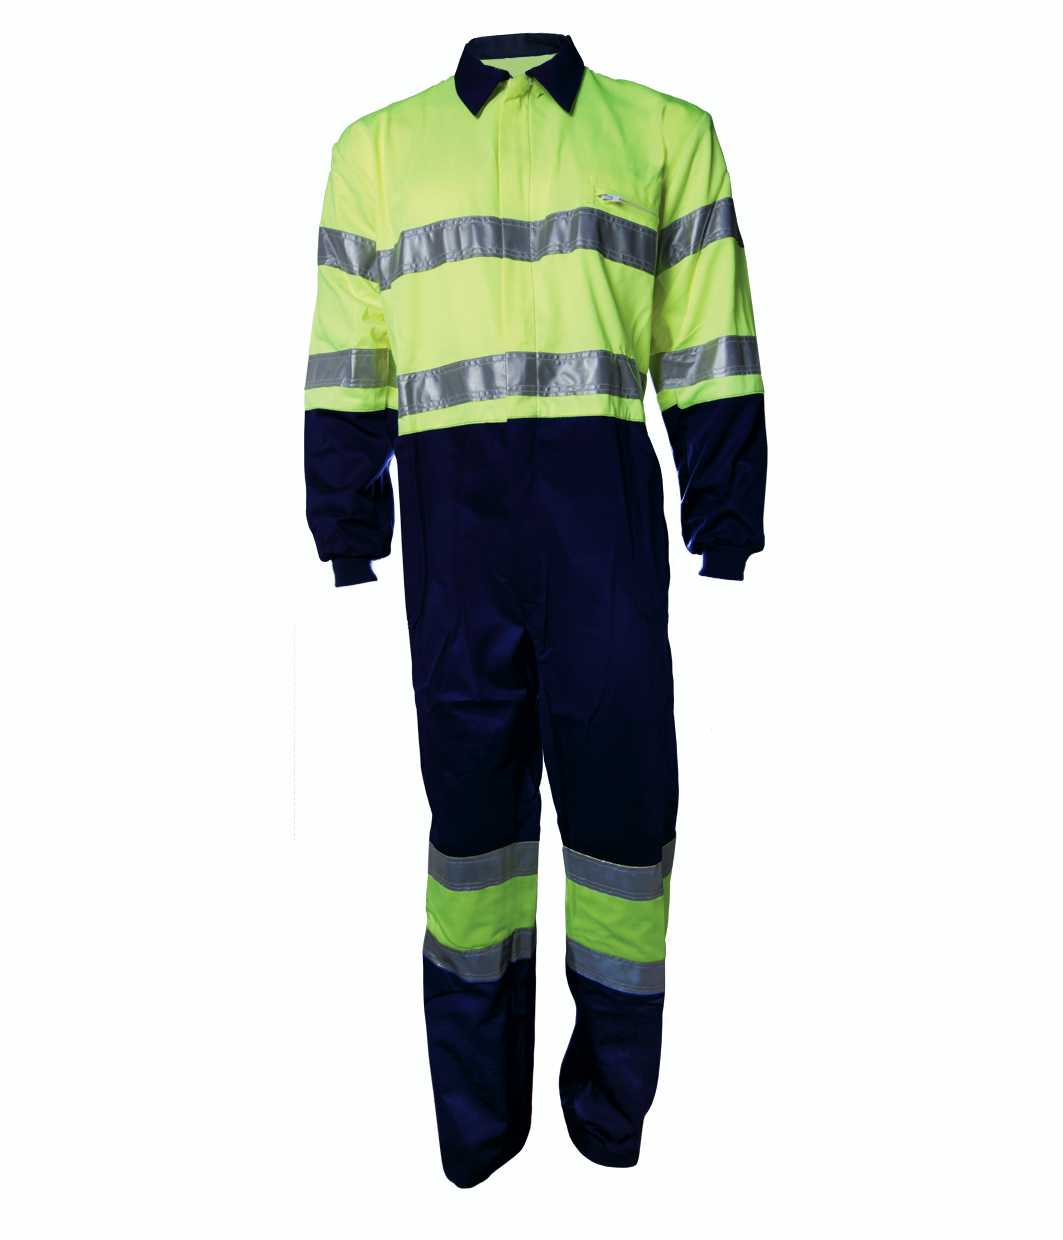 Coverall two tone yellow hi-visibility 100% cotton Image